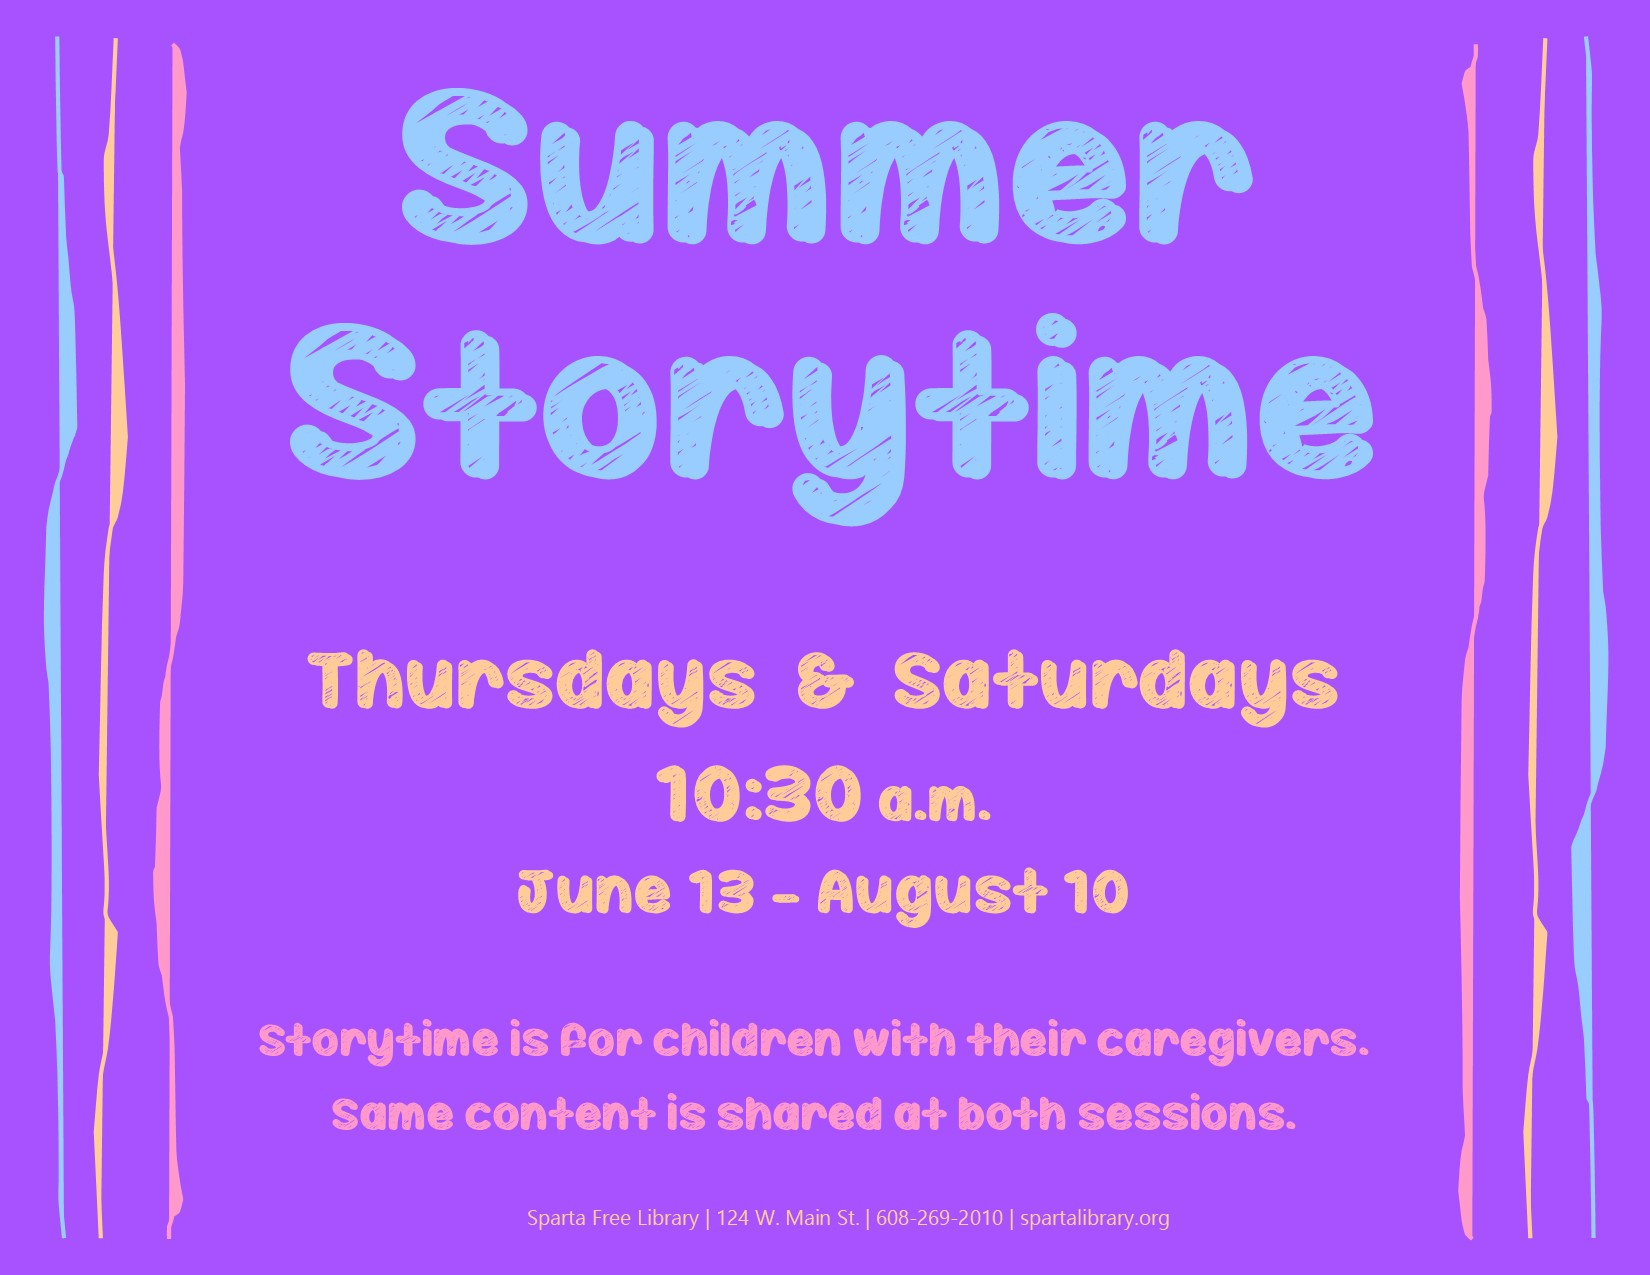 Storytime @ Sparta Free Library